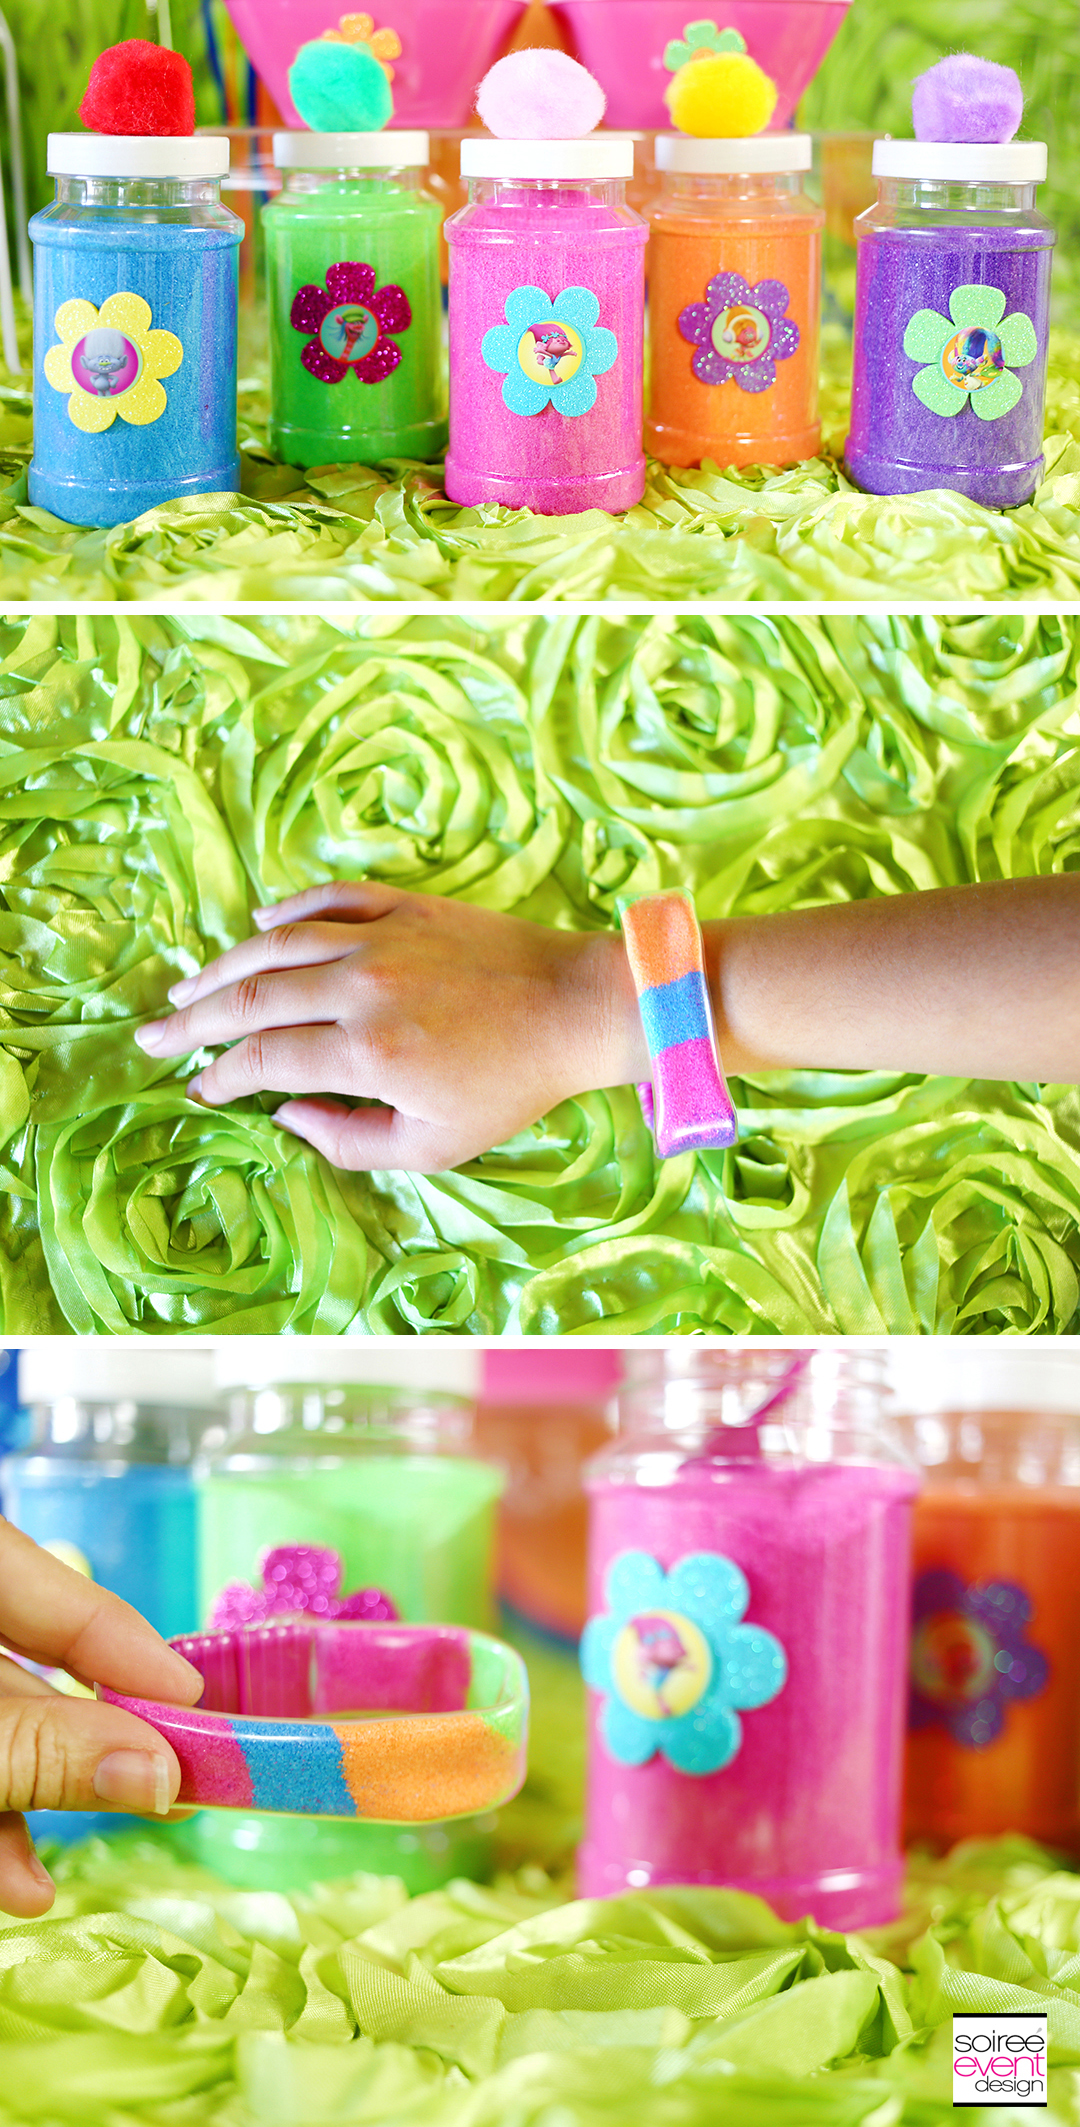 trolls-party-crafts-rainbow-sand-bracelets